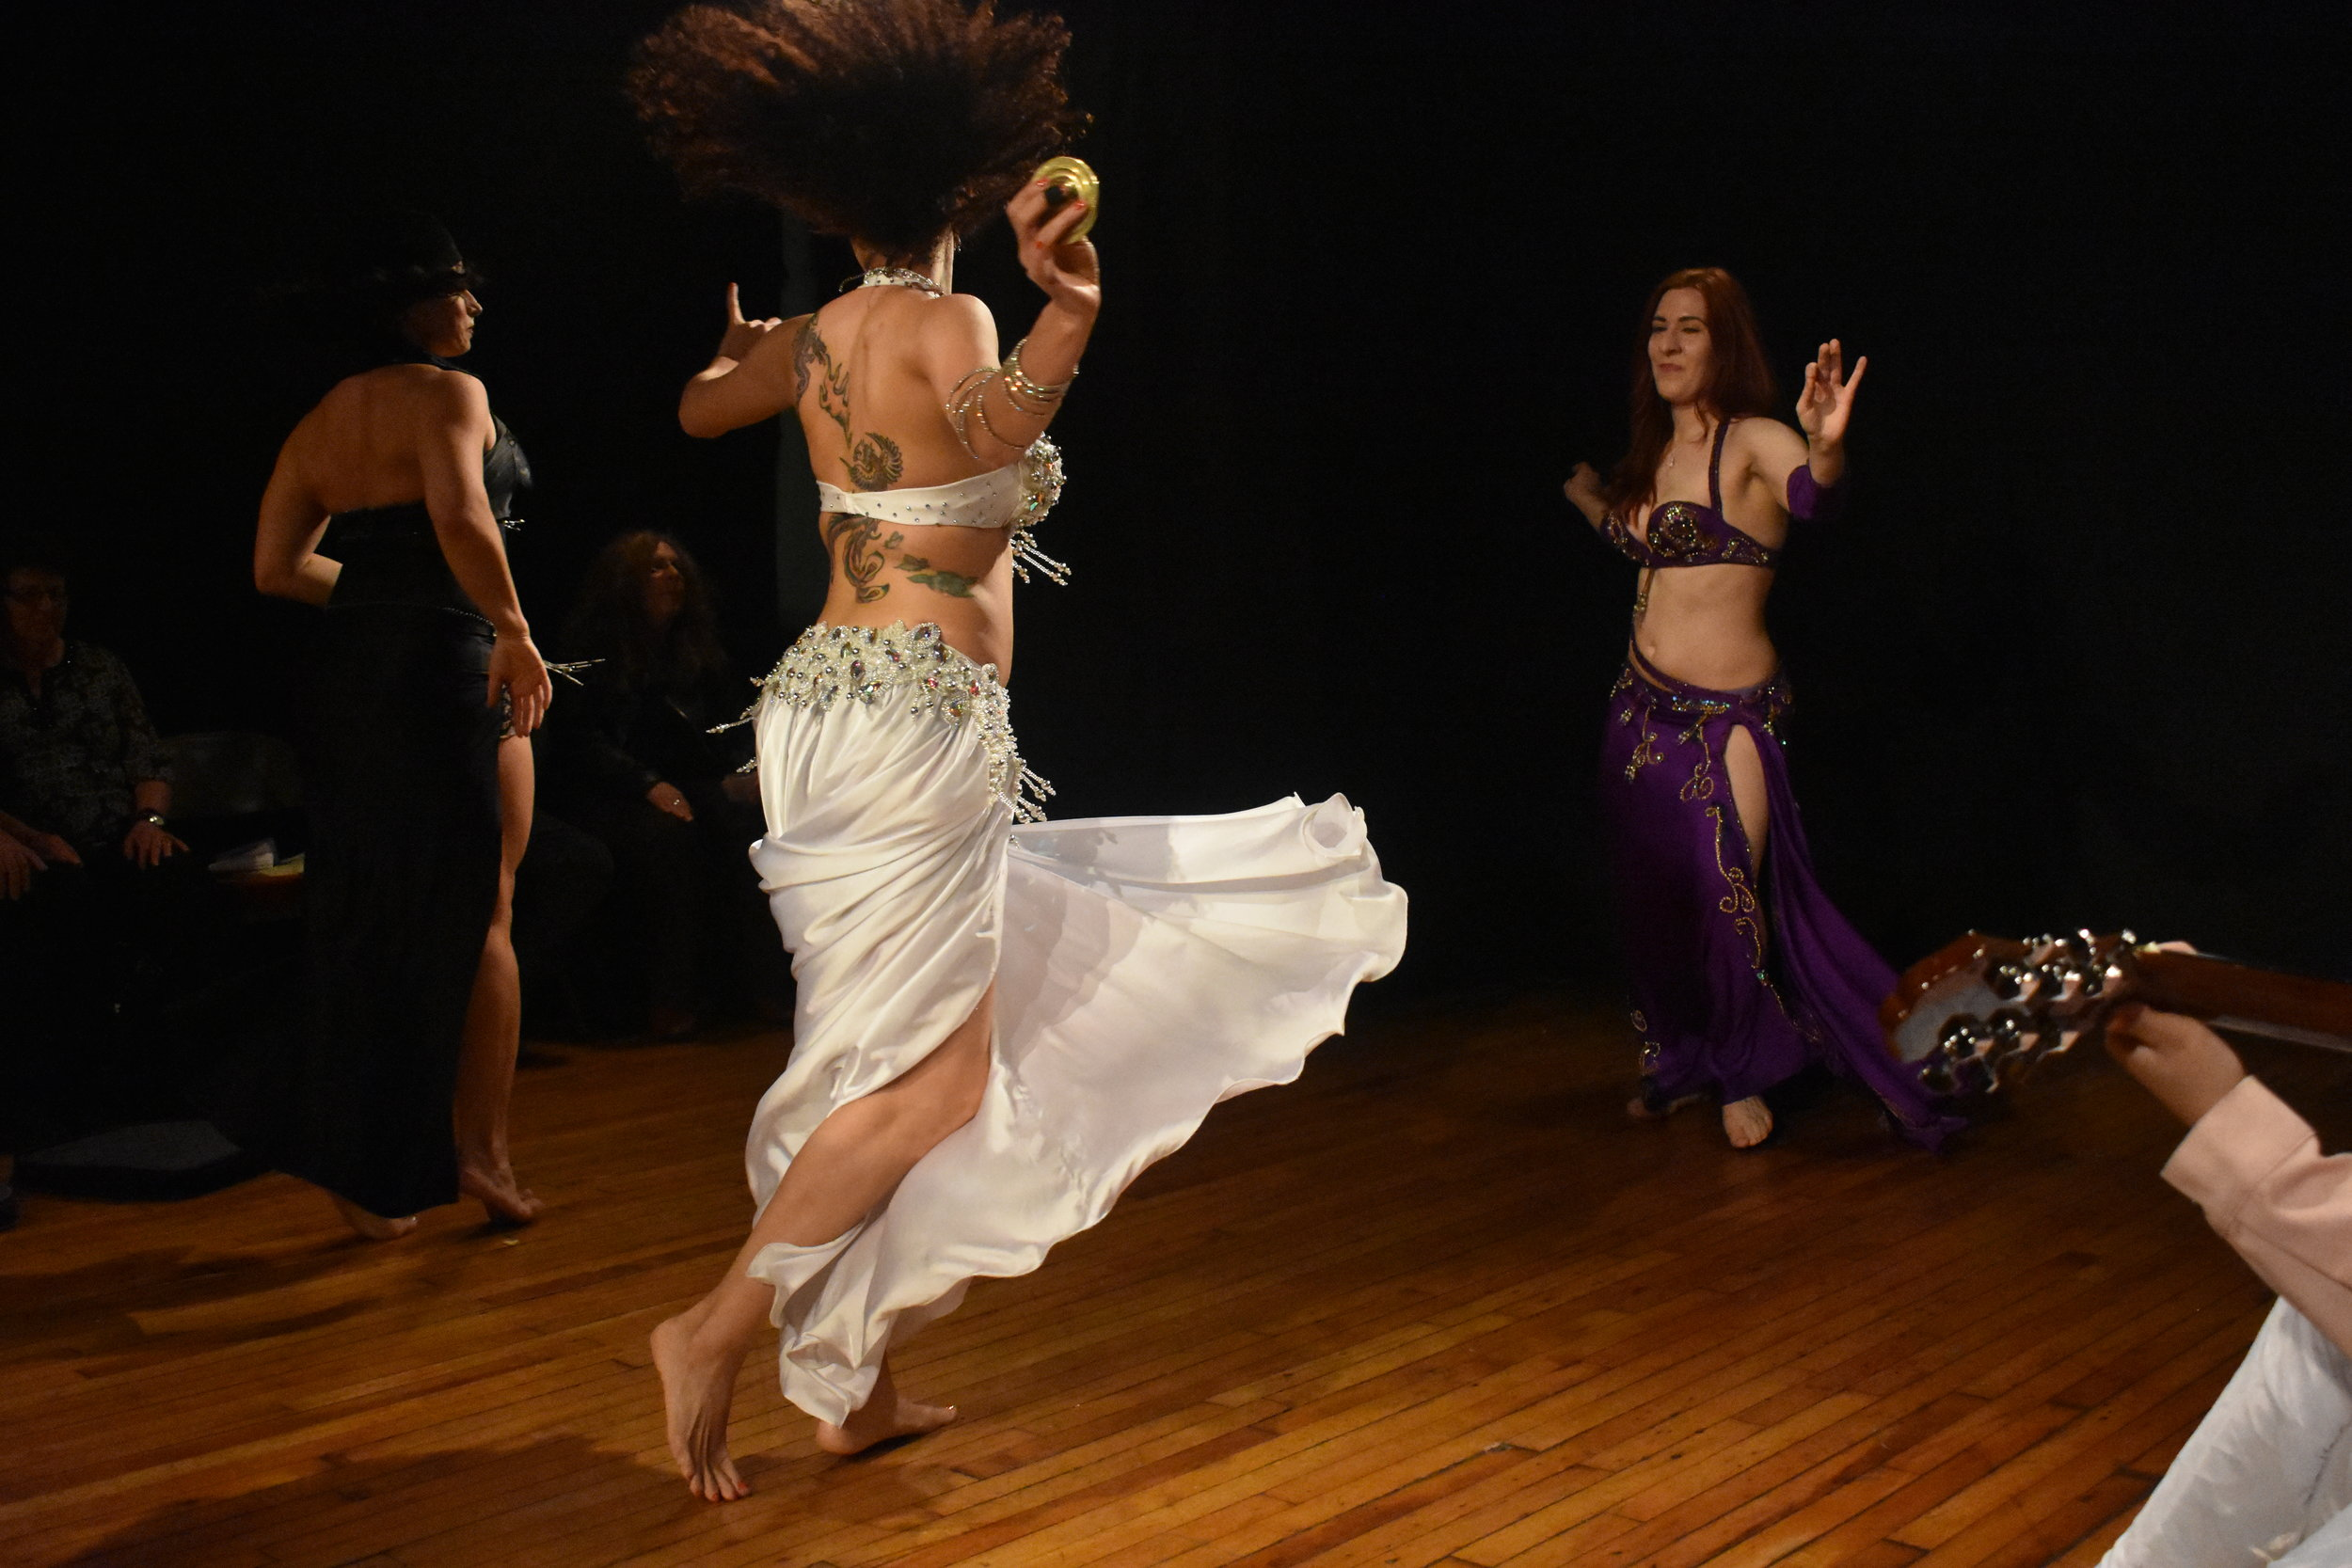 Shayna Maydela performed at the intersection of belly dancing and spirituality. Photo by Mollie Block